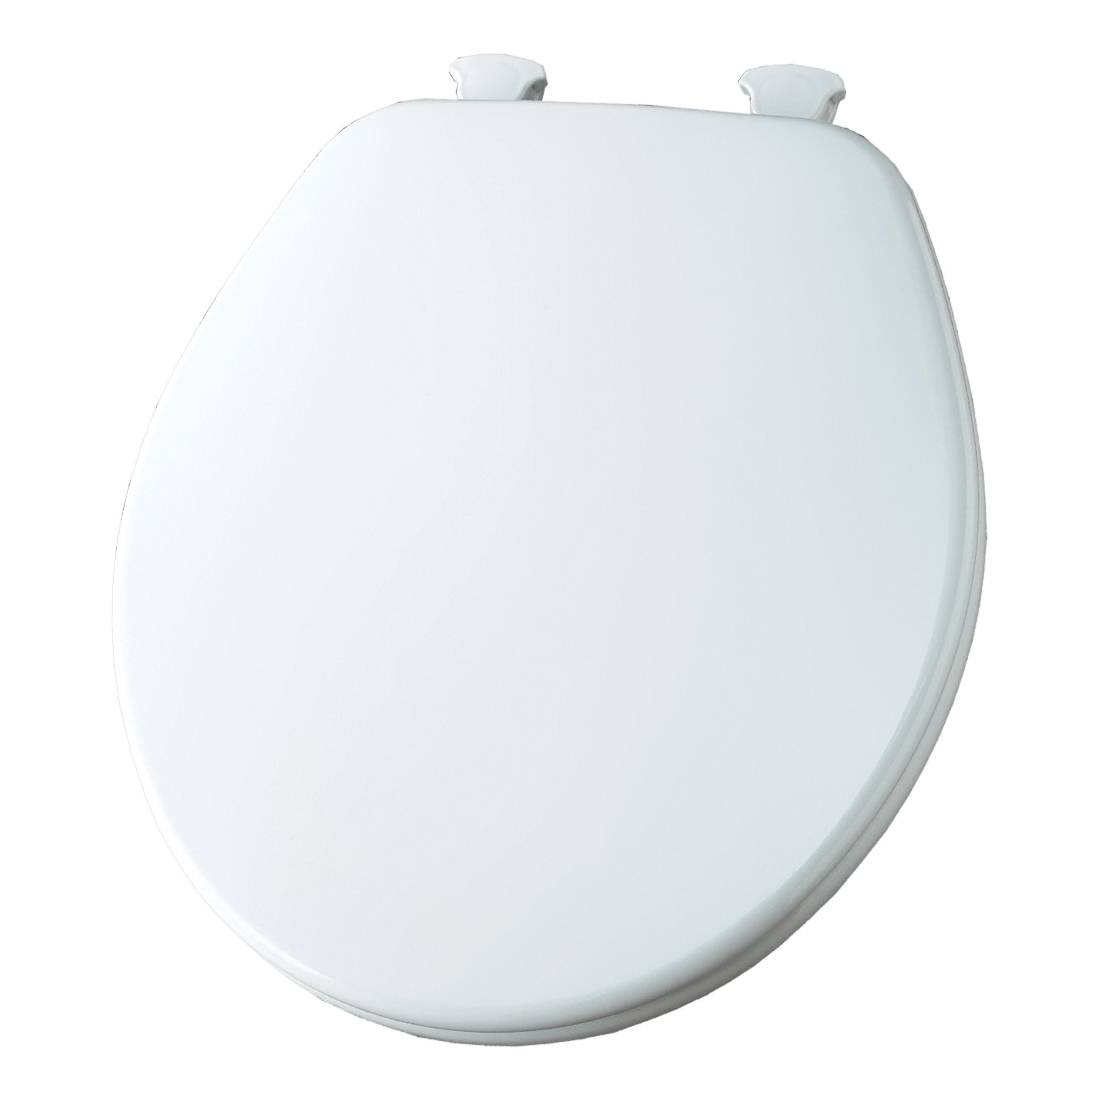 Church® 540EC 000 Toilet Seat With Cover, Round Bowl, Closed Front, Wood, Enamel High Gloss/White, Easy Clean & Change® Hinge, Domestic